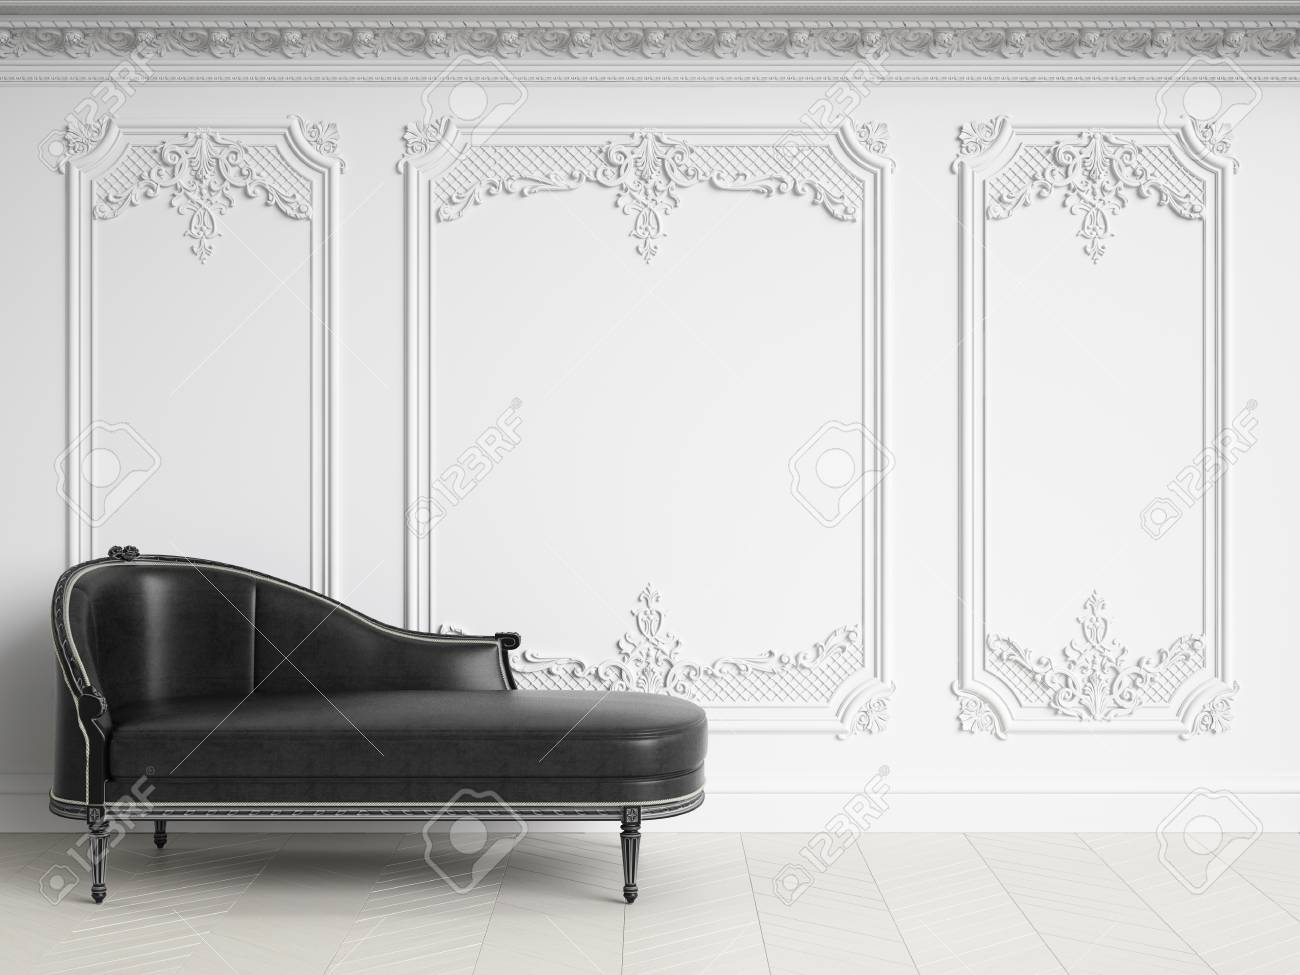 Classic chaise longue in classic white interior with copy space.Walls with mouldings,ornated cornice. Floor parquet herringbone.Digital Illustration.3d rendering - 124693891